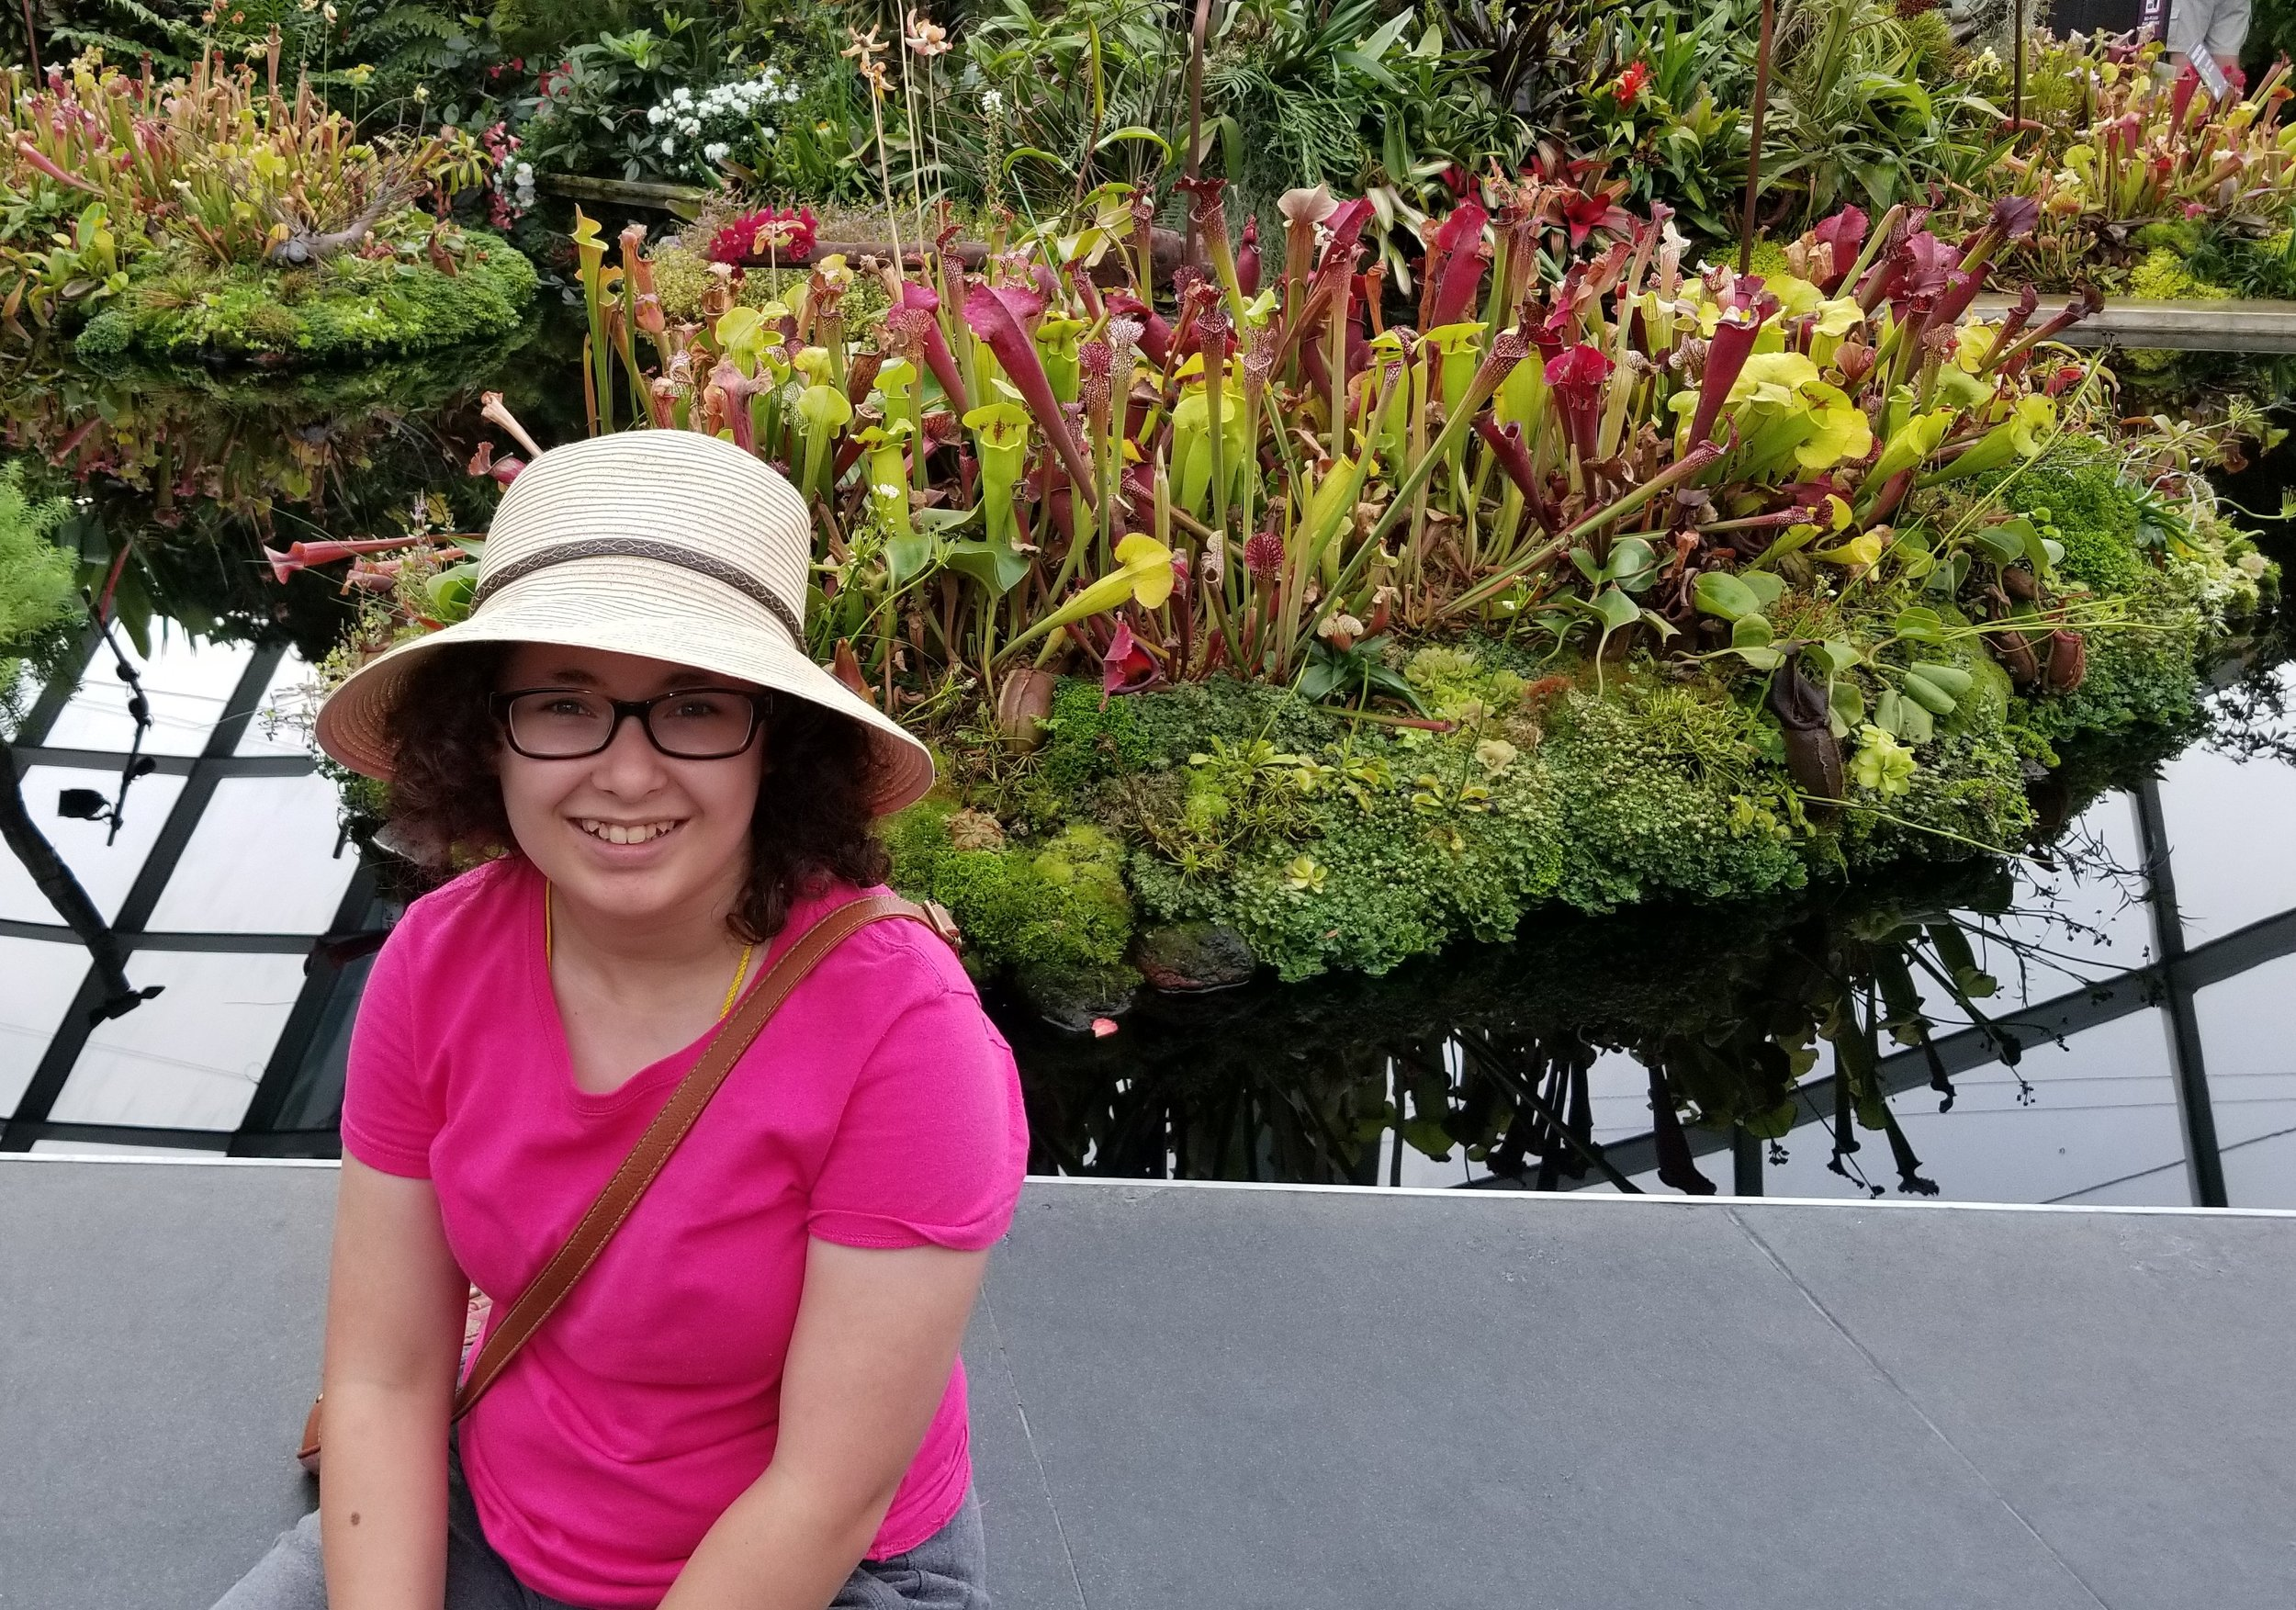 """I told Sarah I would take a """"picture"""" of the her in front of the """"pitcher"""" plants. She said I was fired as pun maker ..."""